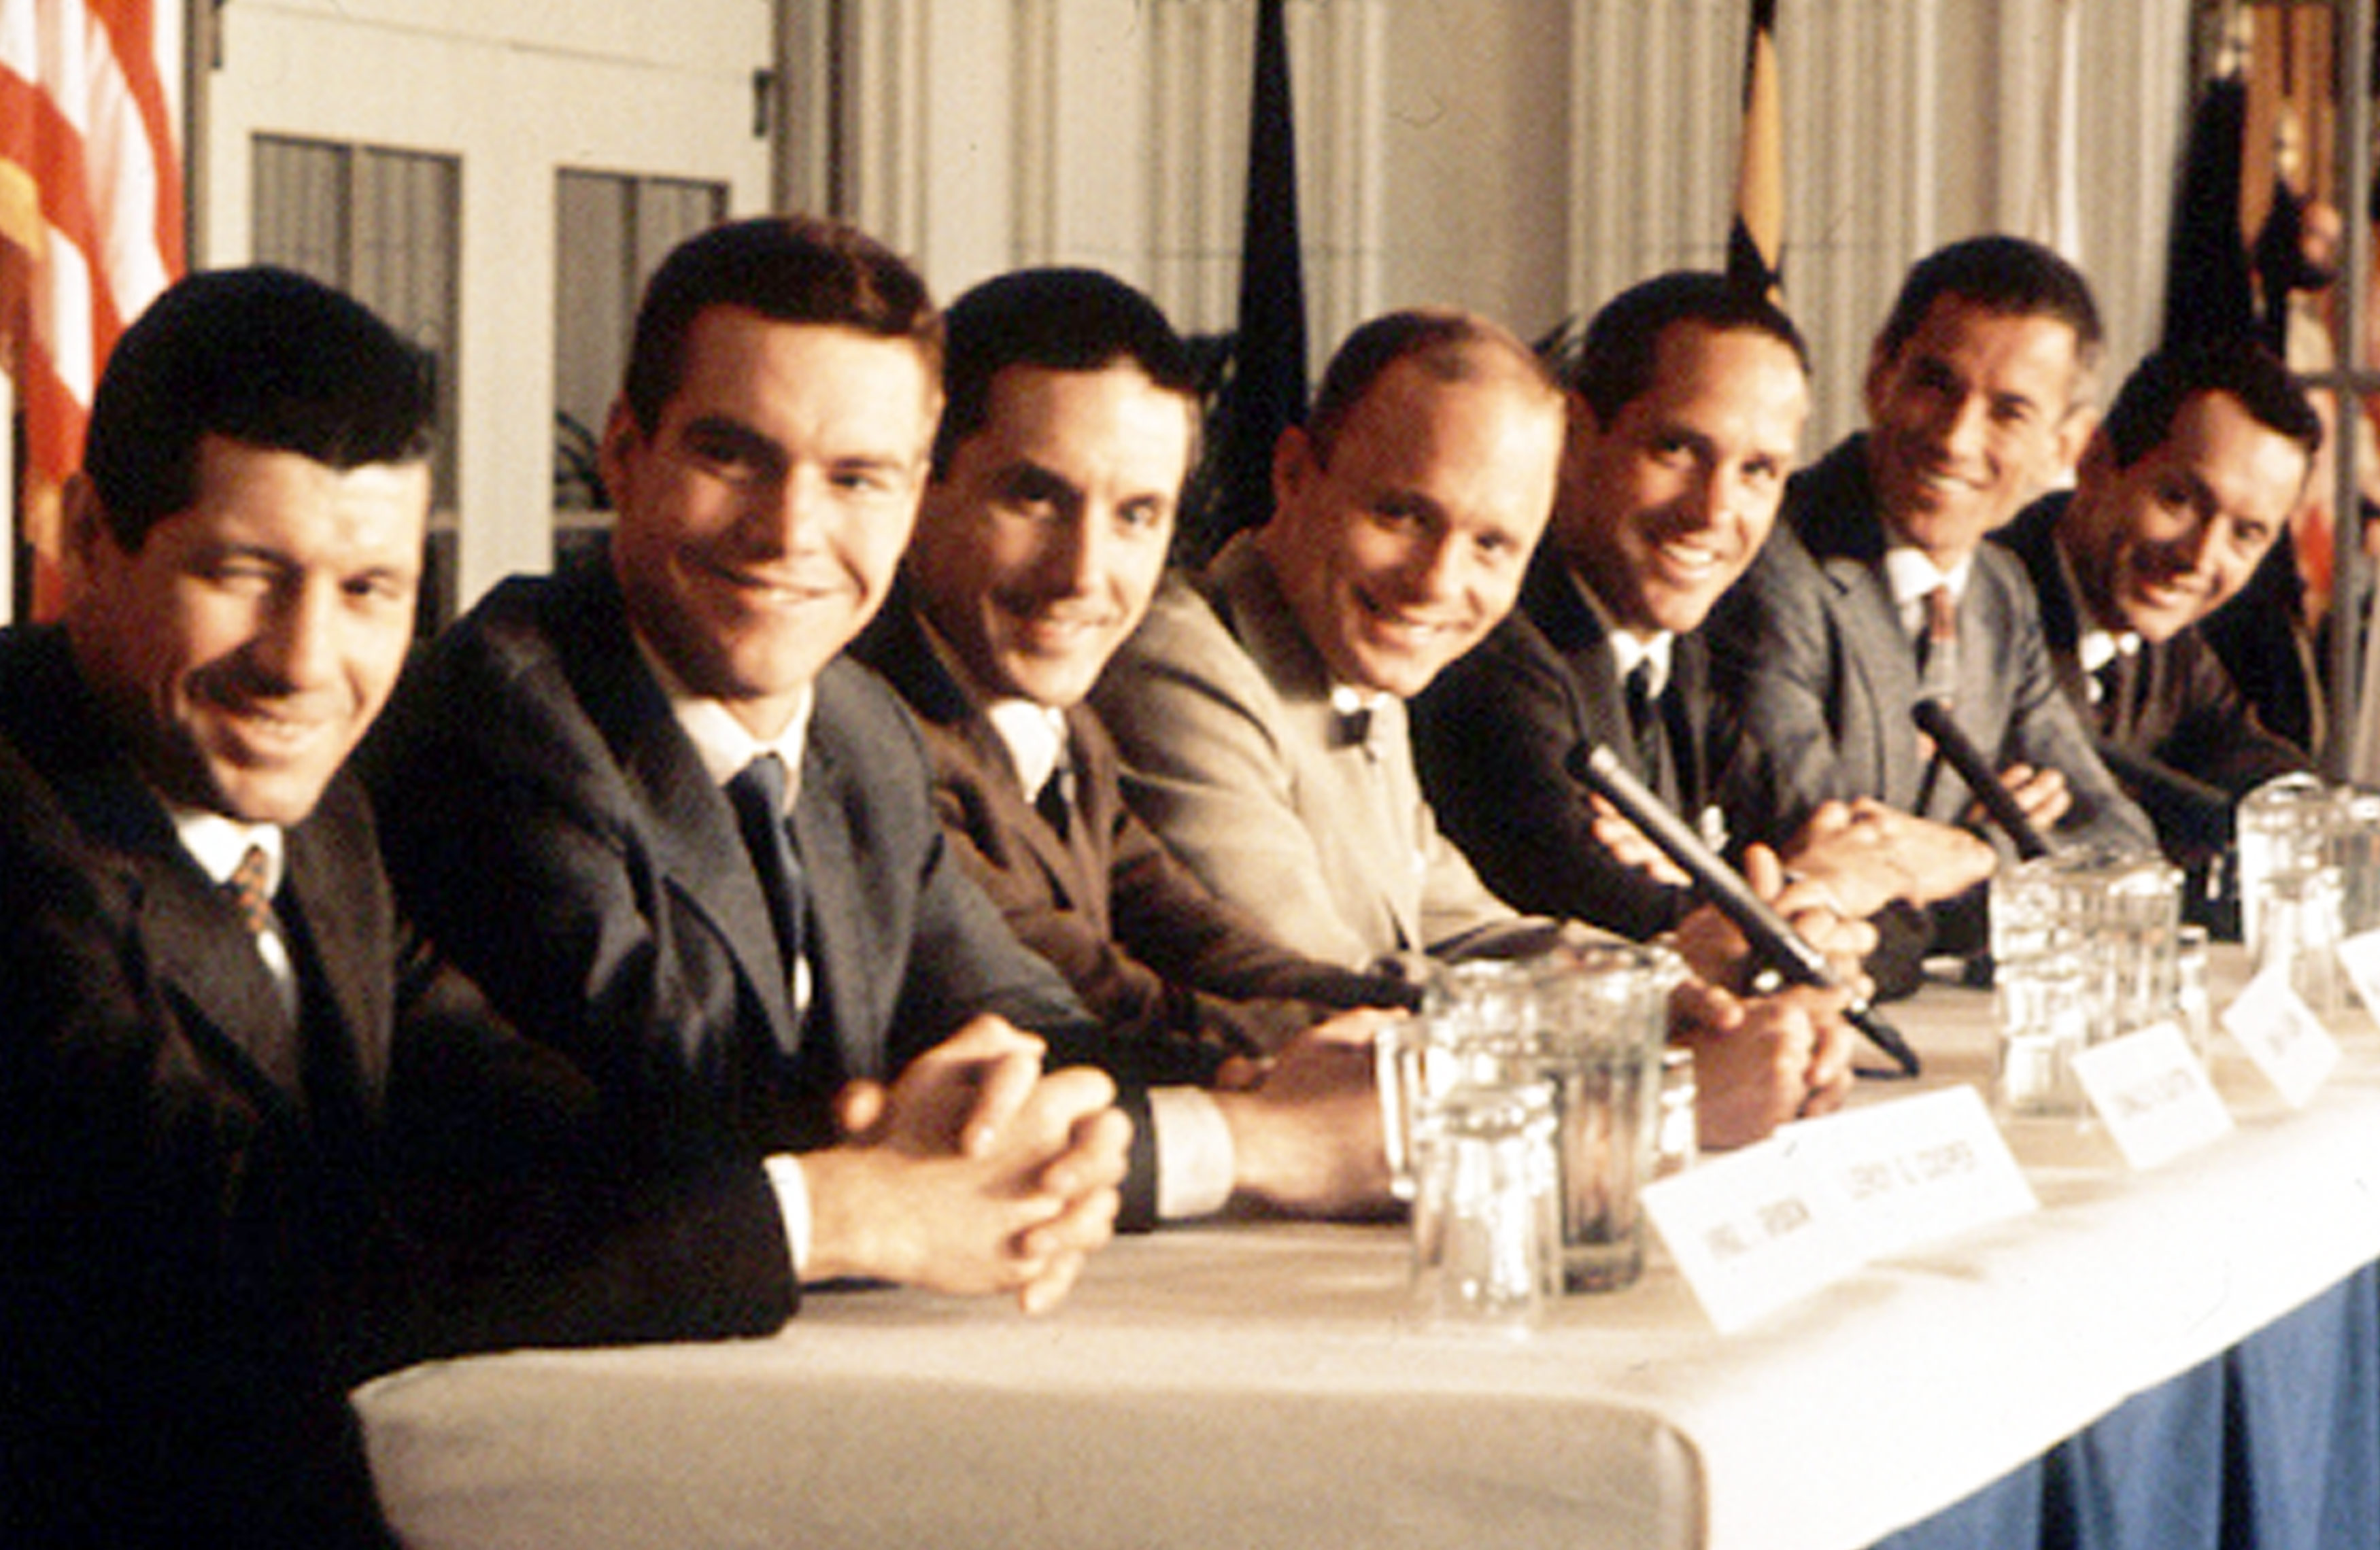 Gus Grissom (Fred Ward), Gordon Cooper (Dennis Quaid), Deke Slayton (Scott Paulin), John Glenn (Ed Harris), Scott Carpenter (Charles Frank), Alan Shepard (Scott Glenn) and Wally Schirra (Lance Henriksen) in The Right Stuff (1983)